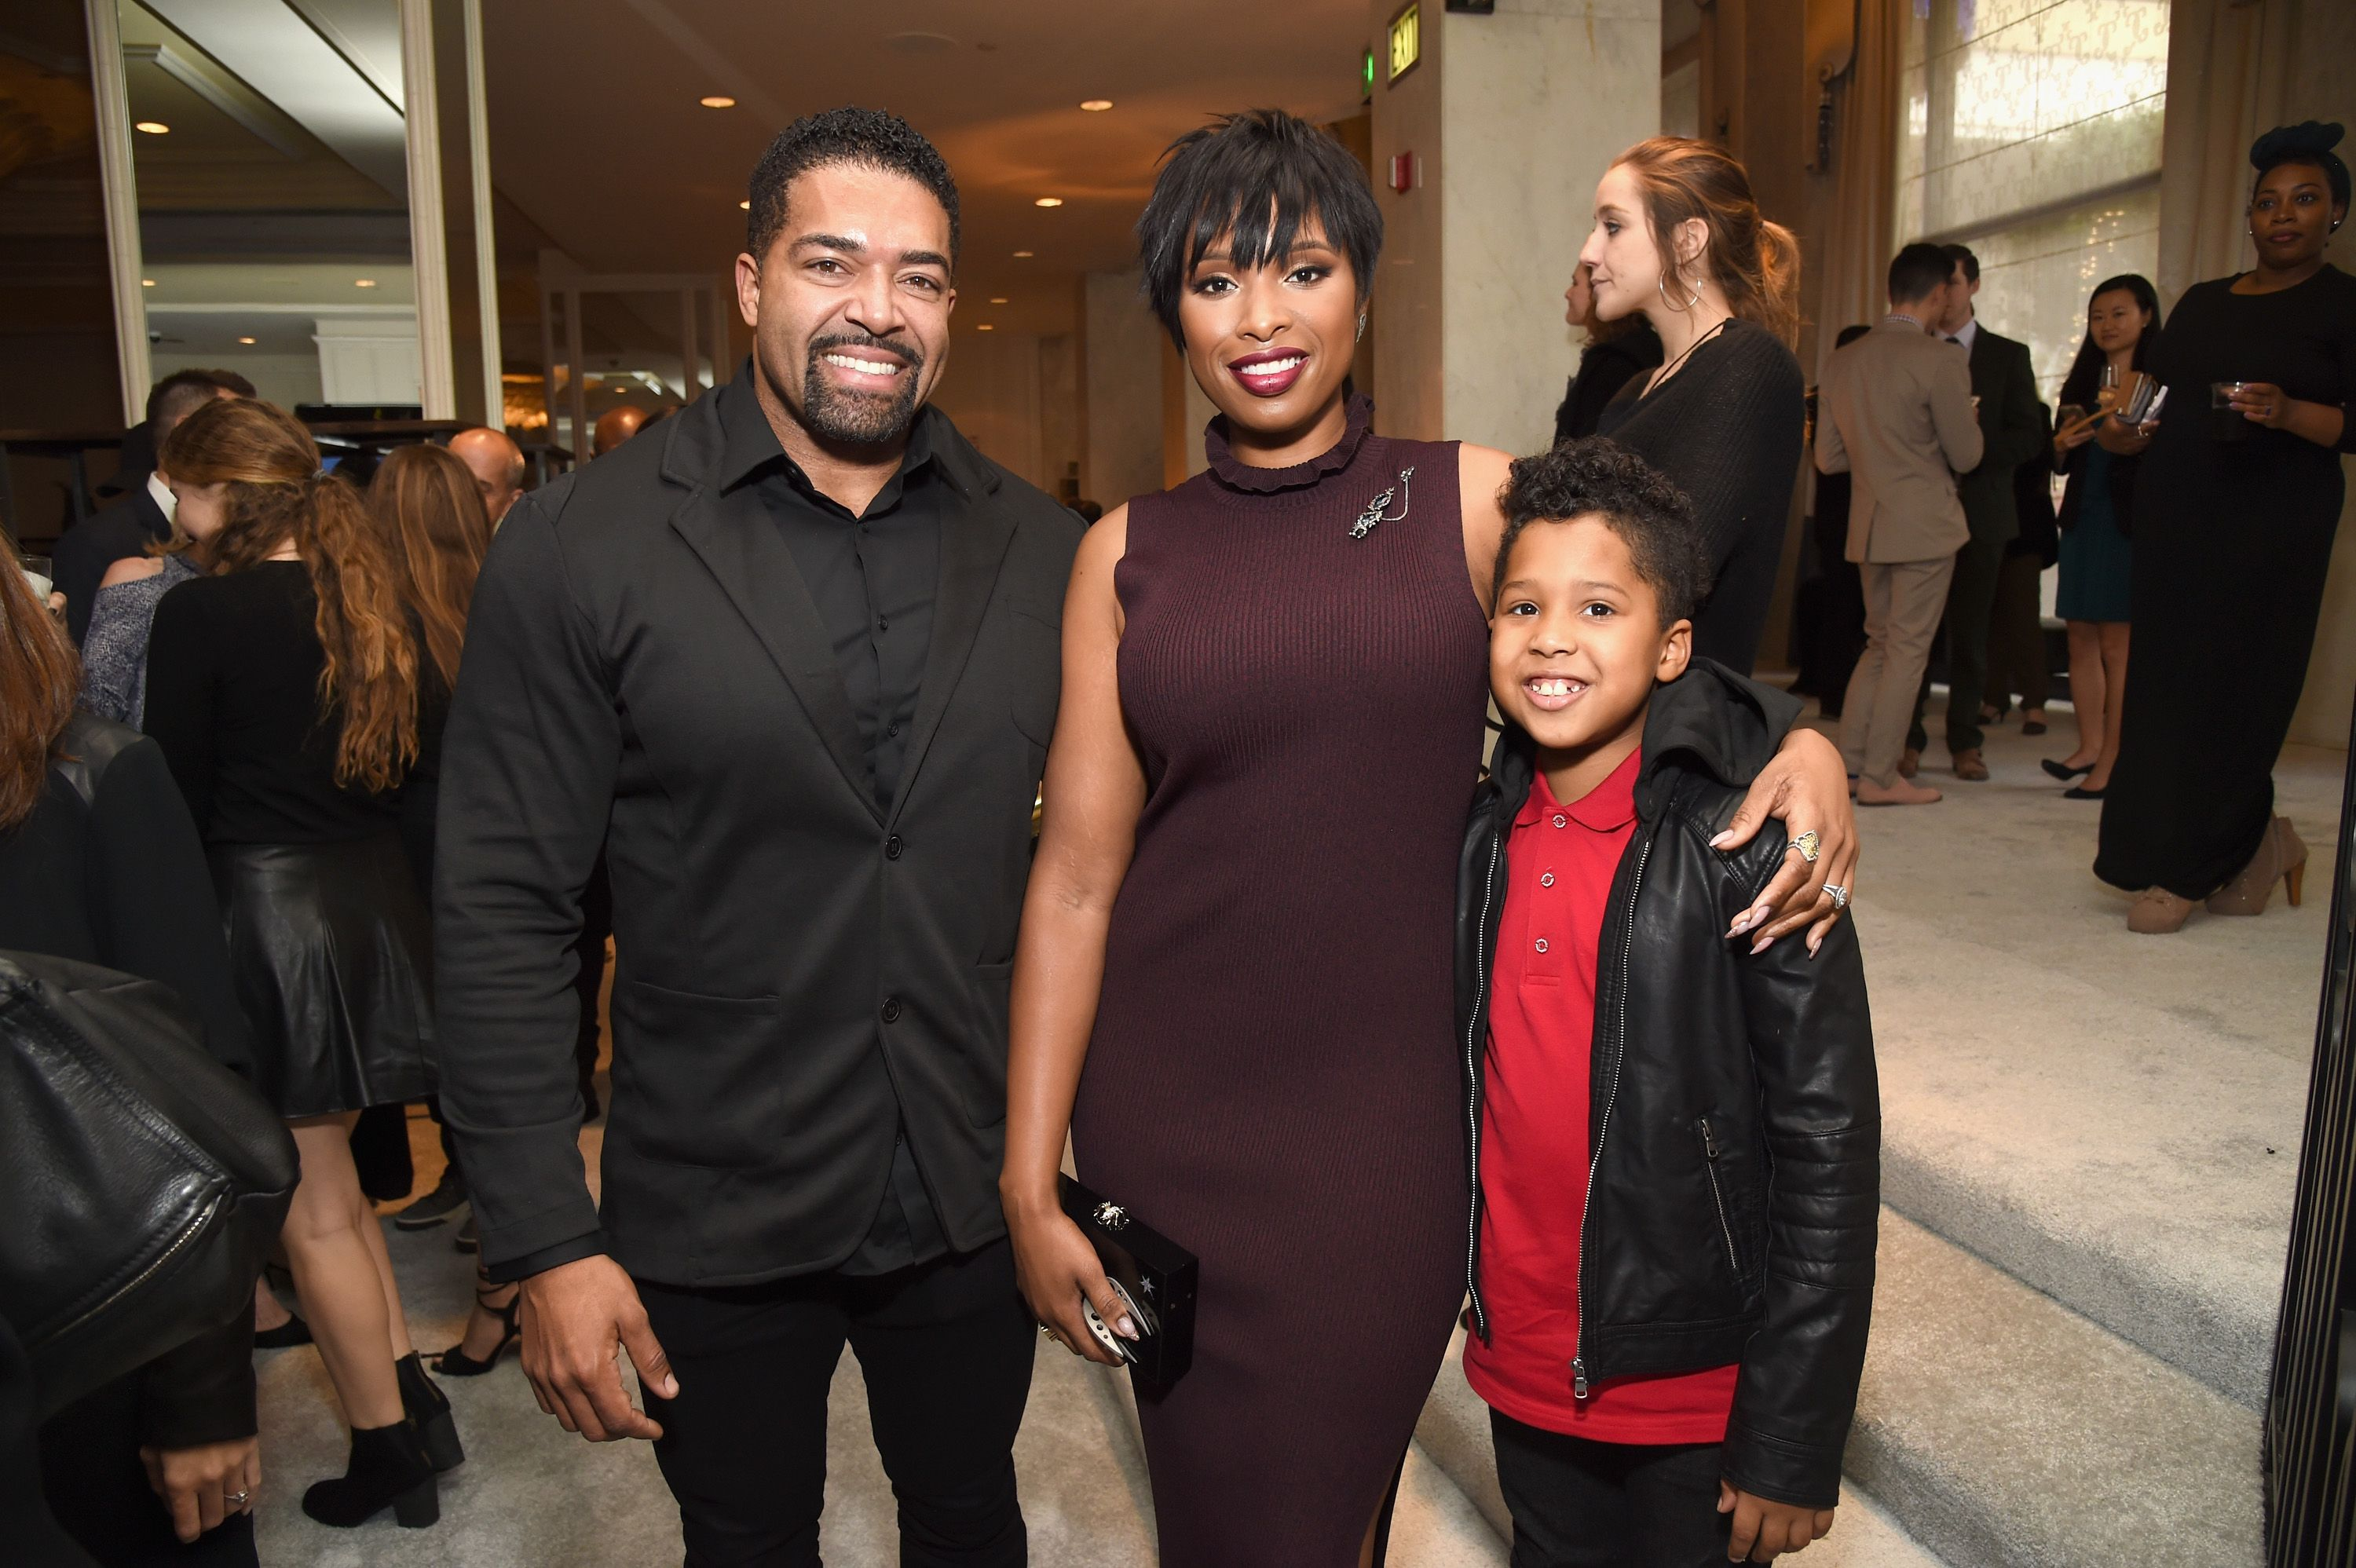 Wrestler David Otunga, honoree Jennifer Hudson and David Otunga Jr. at the 2016 March of Dimes Celebration of Babies at the Beverly Wilshire Four Seasons Hotel on December 9, 2016 | Photo: Getty Images